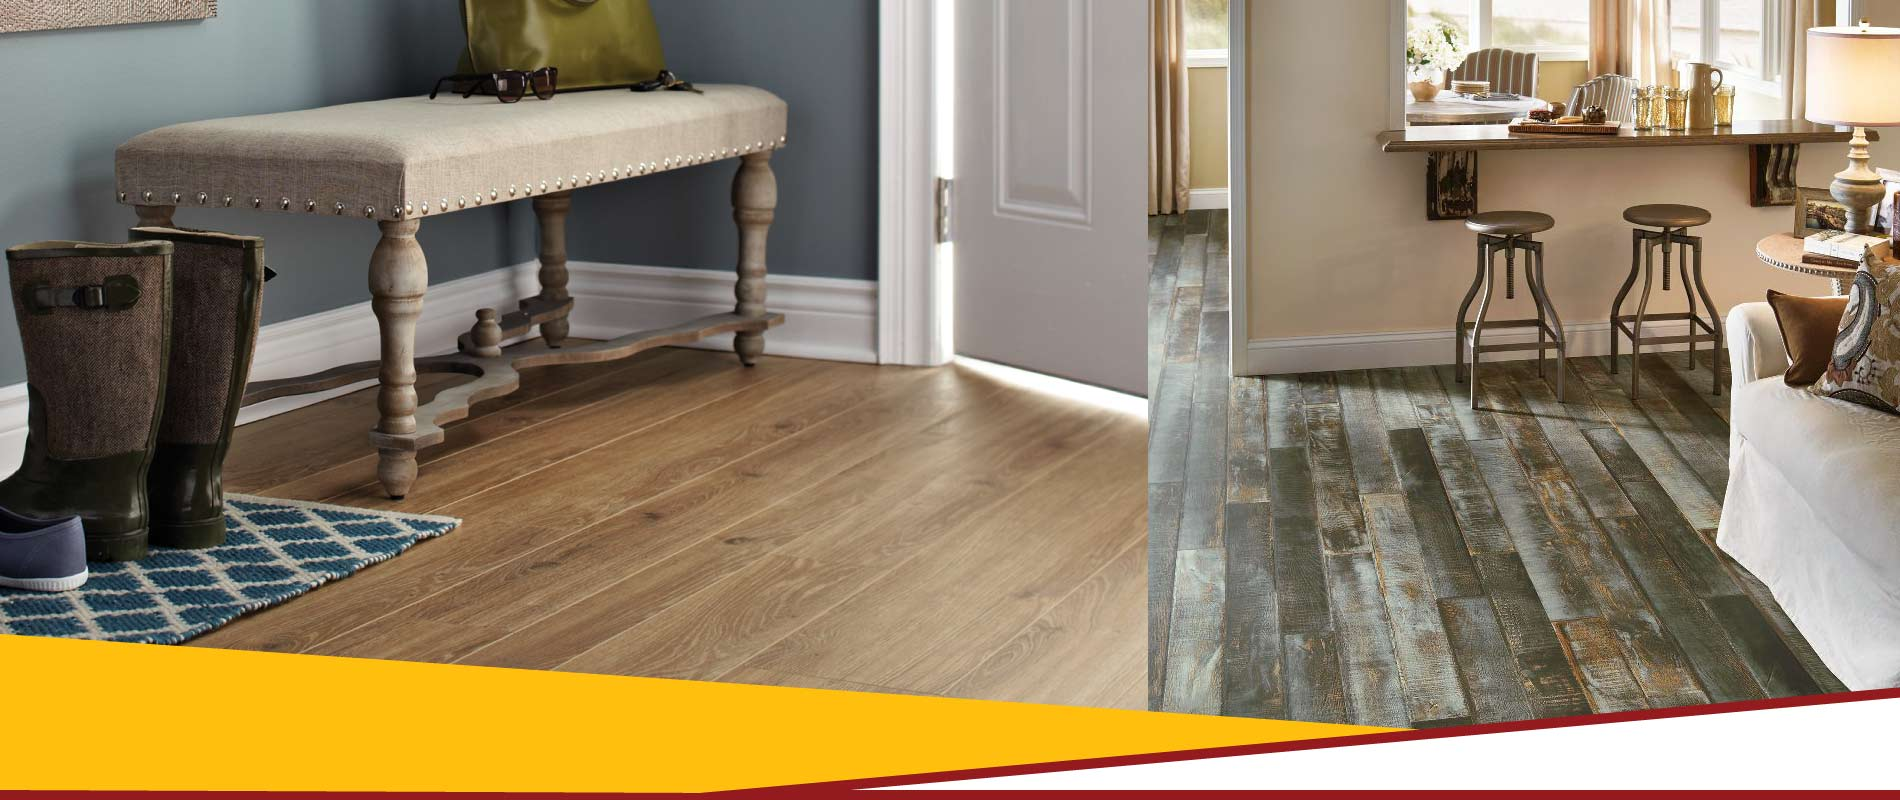 Residential house laminate flooring